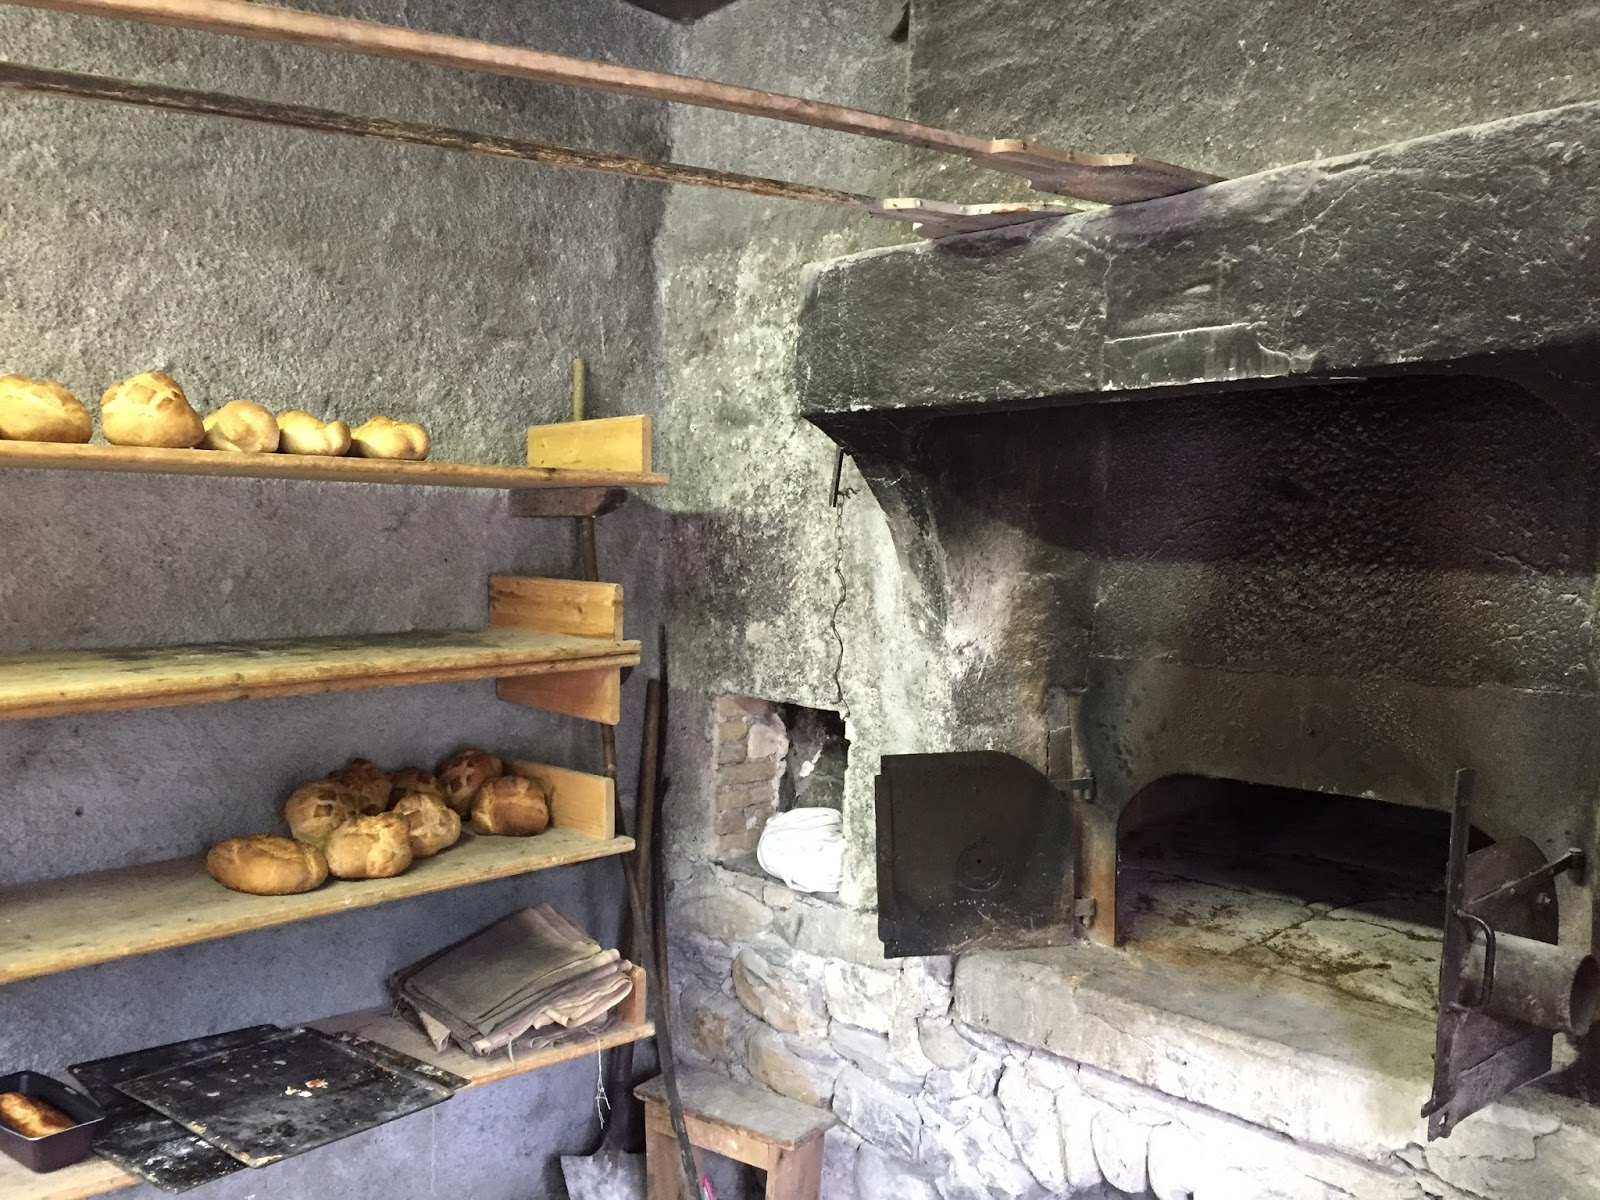 This Particular Bakery Four Des Bellarots Oven Is Located In A Small Village The Parc National De Mercantour Southeastern France